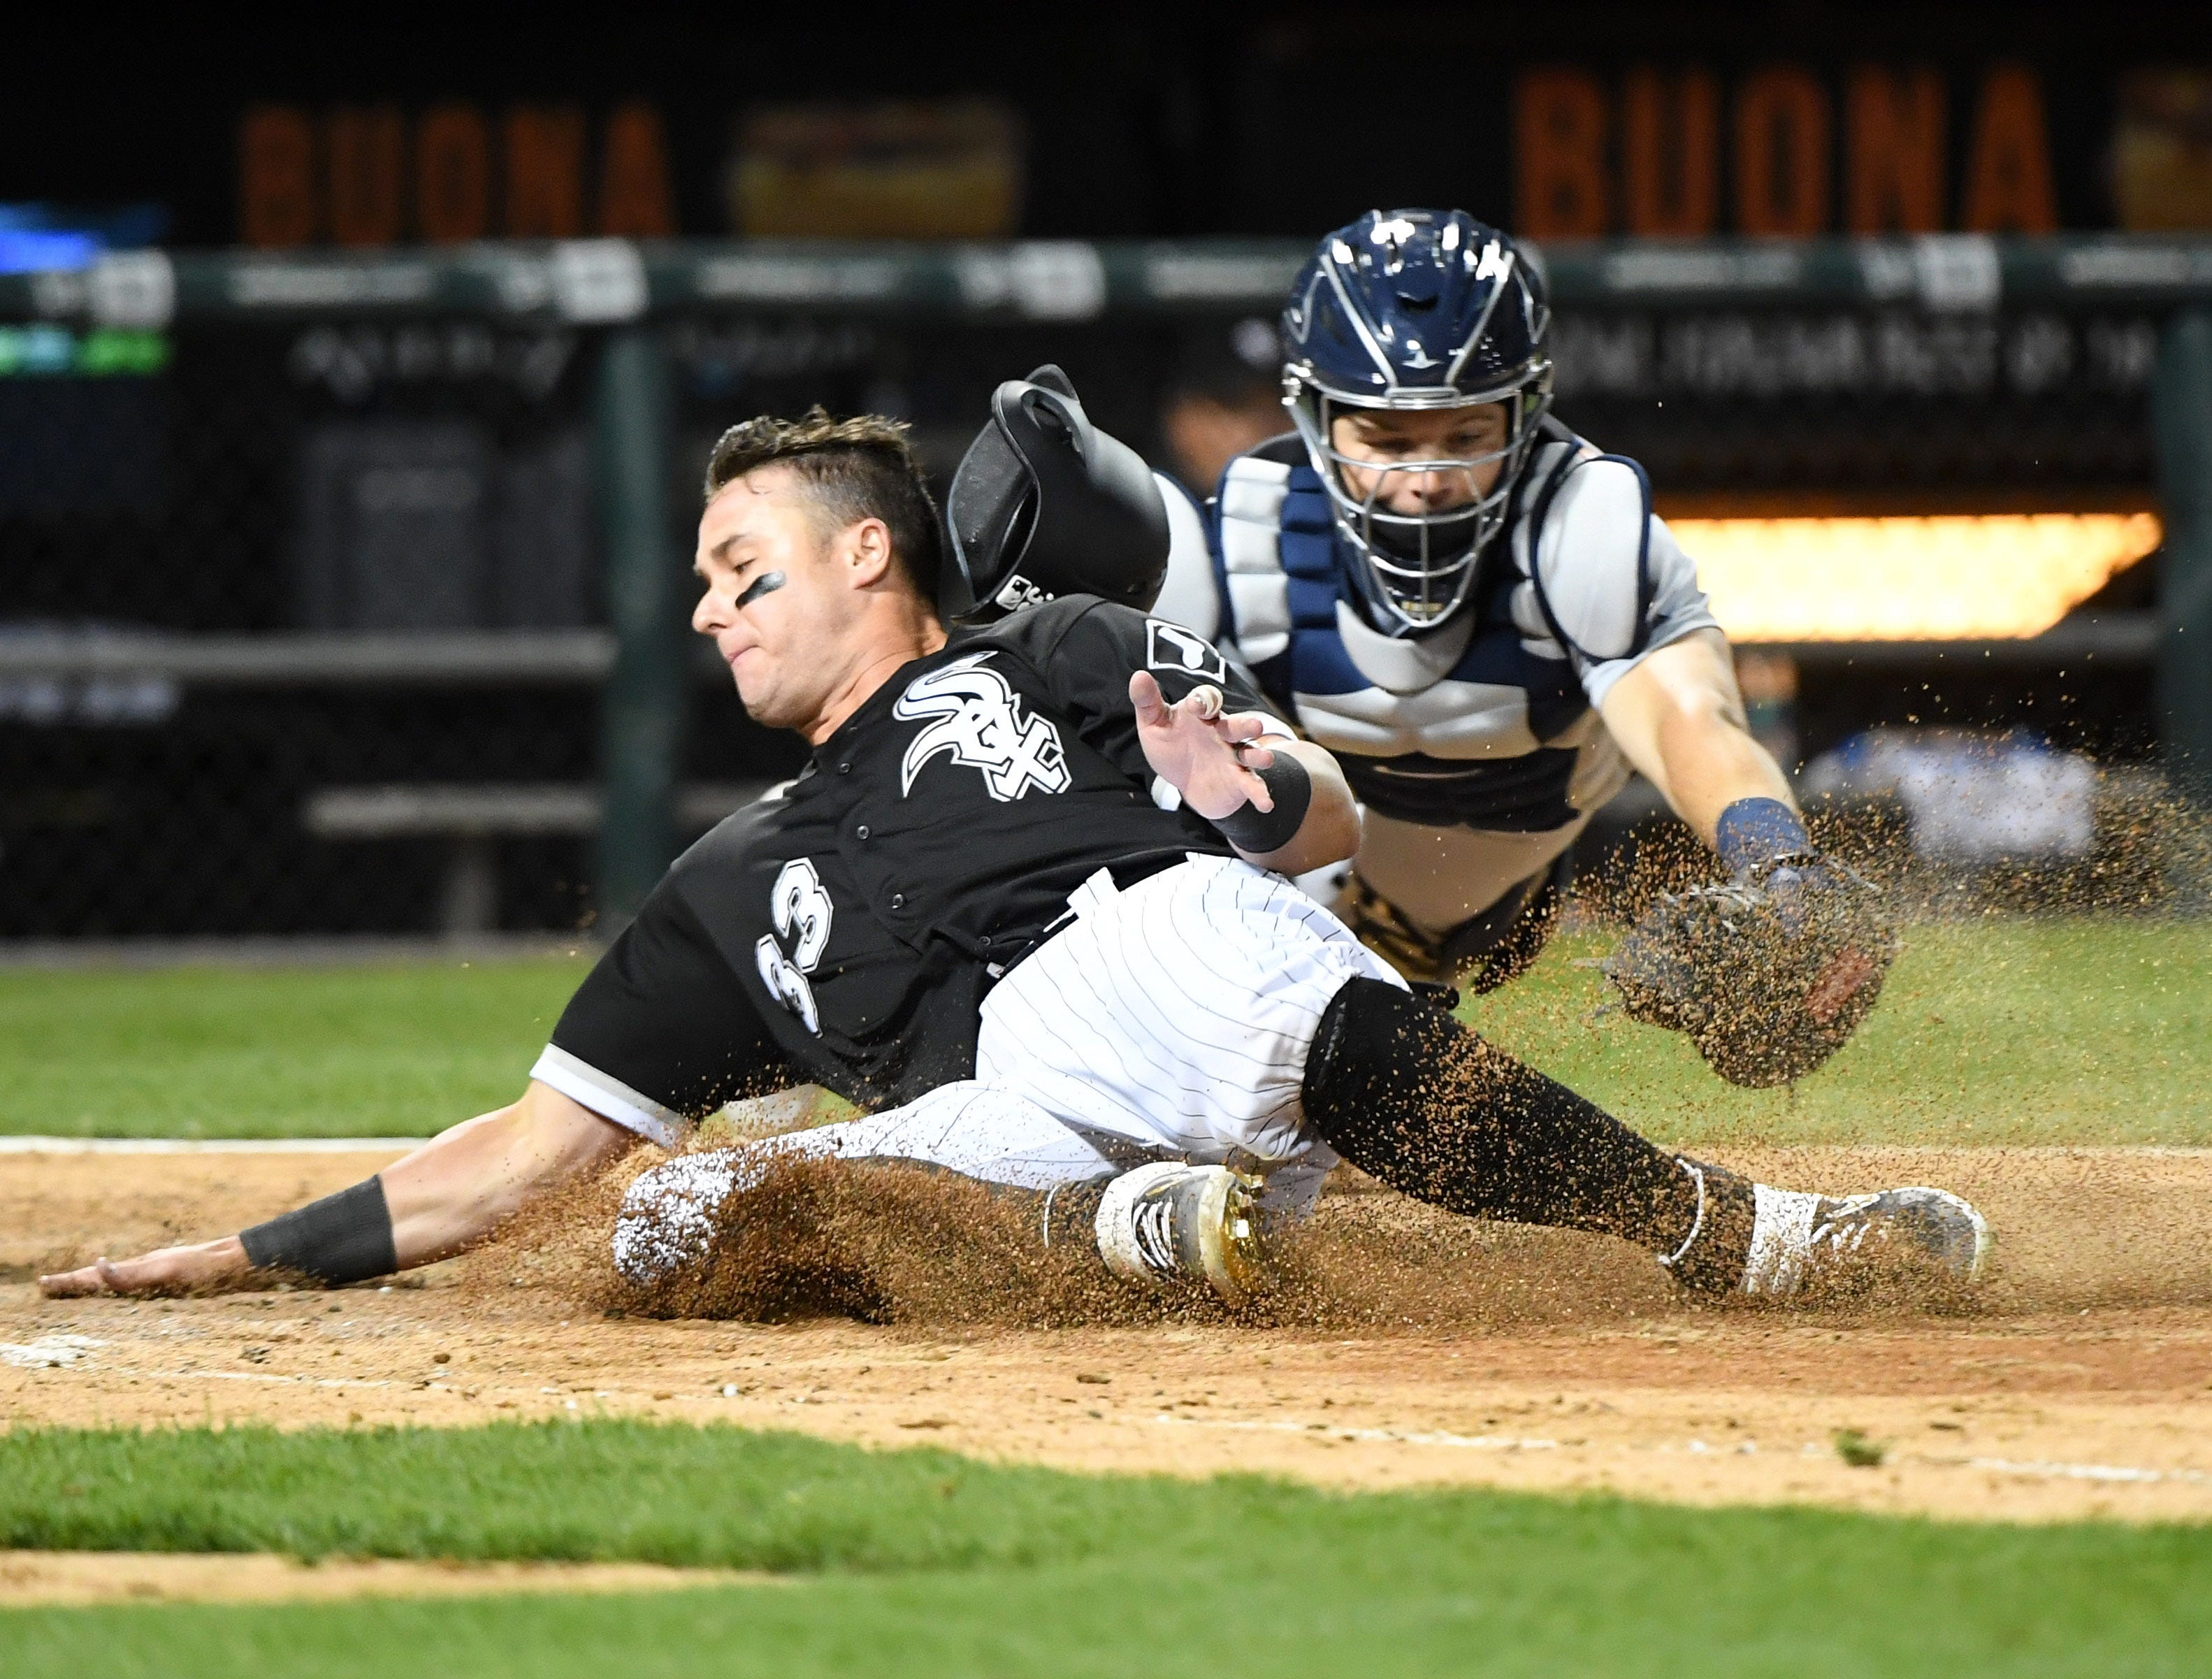 April 26: The Chicago White Sox's James McCann slides home in front of the tag of Detroit Tigers catcher Grayson Greiner during the fifth inning at Guaranteed Rate Field. The White Sox won the game, 12-11.